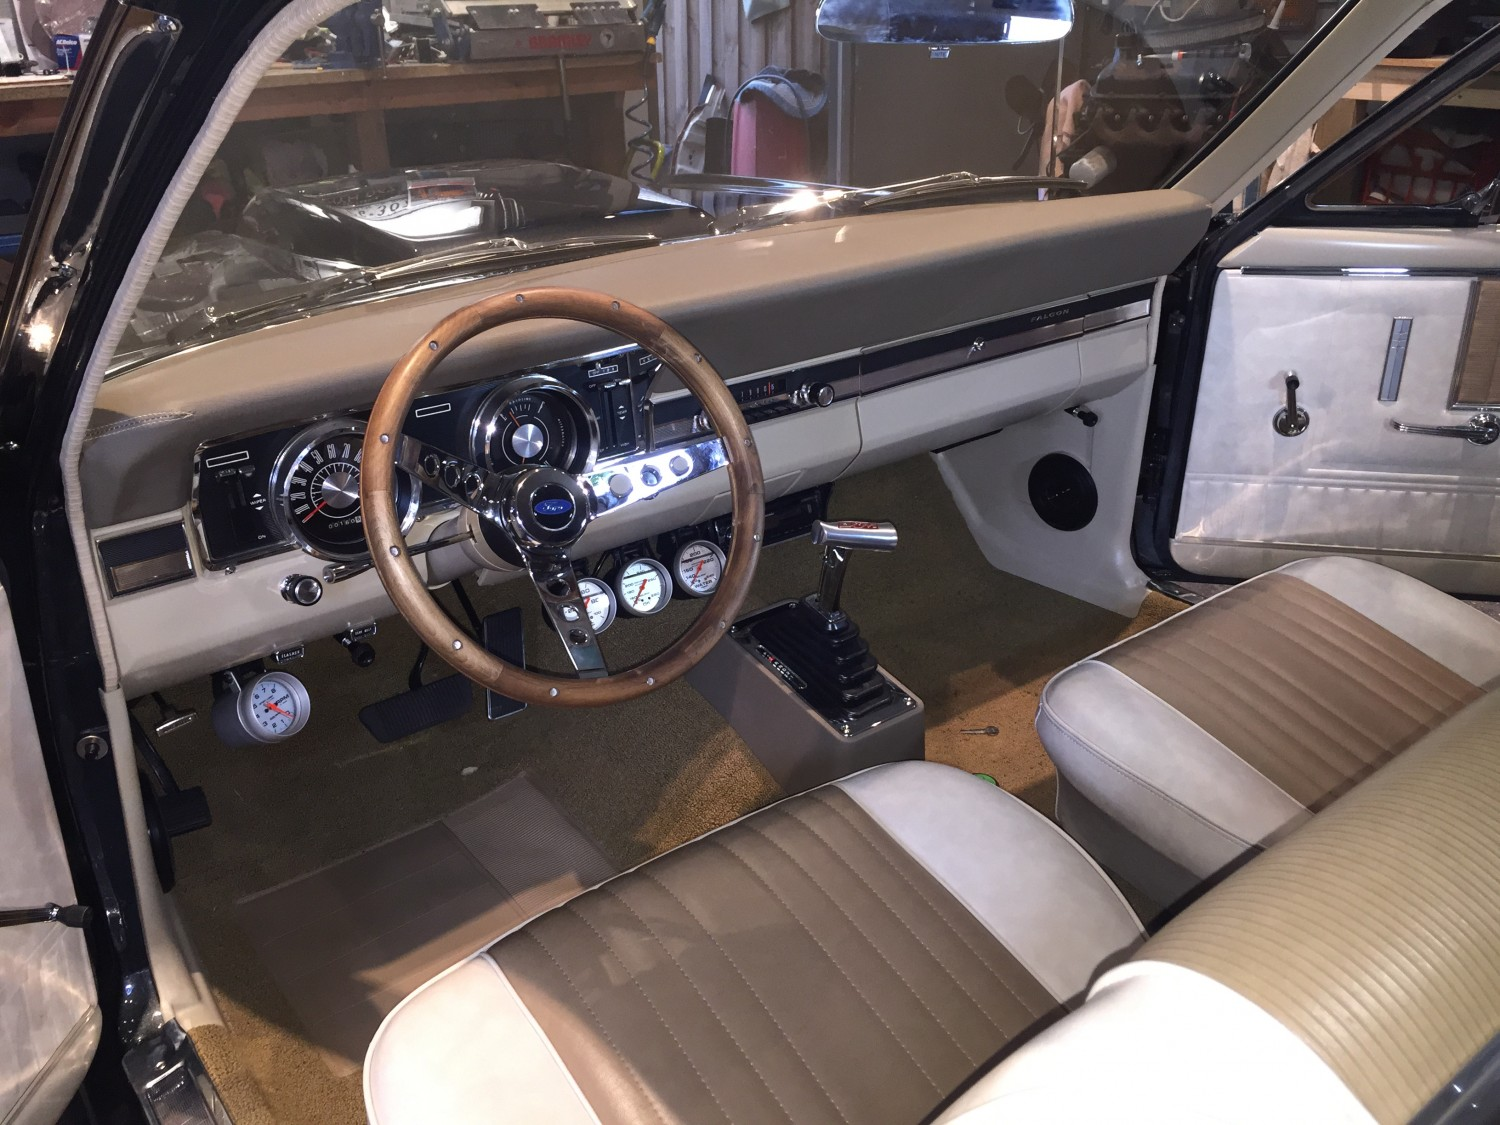 1966 Ford Falcon Futura Sports Coupe - 662dr - Shannons Club